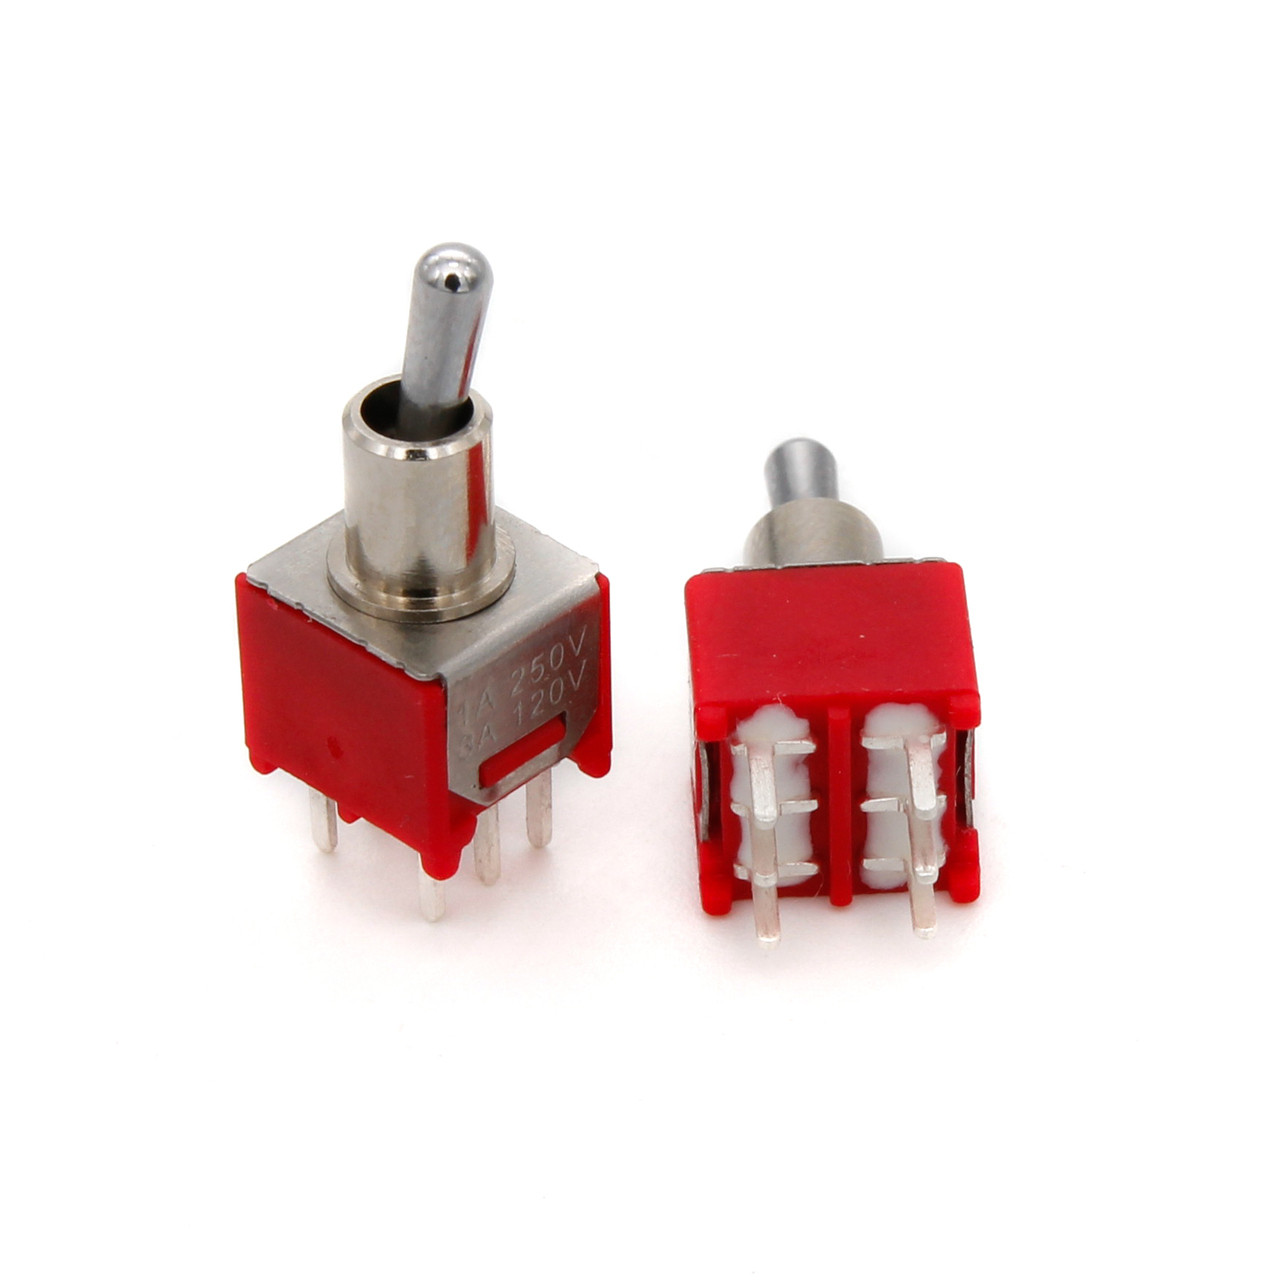 DPDT Sub Mini Toggle Switch - ON/ON/ON - PCB Mount